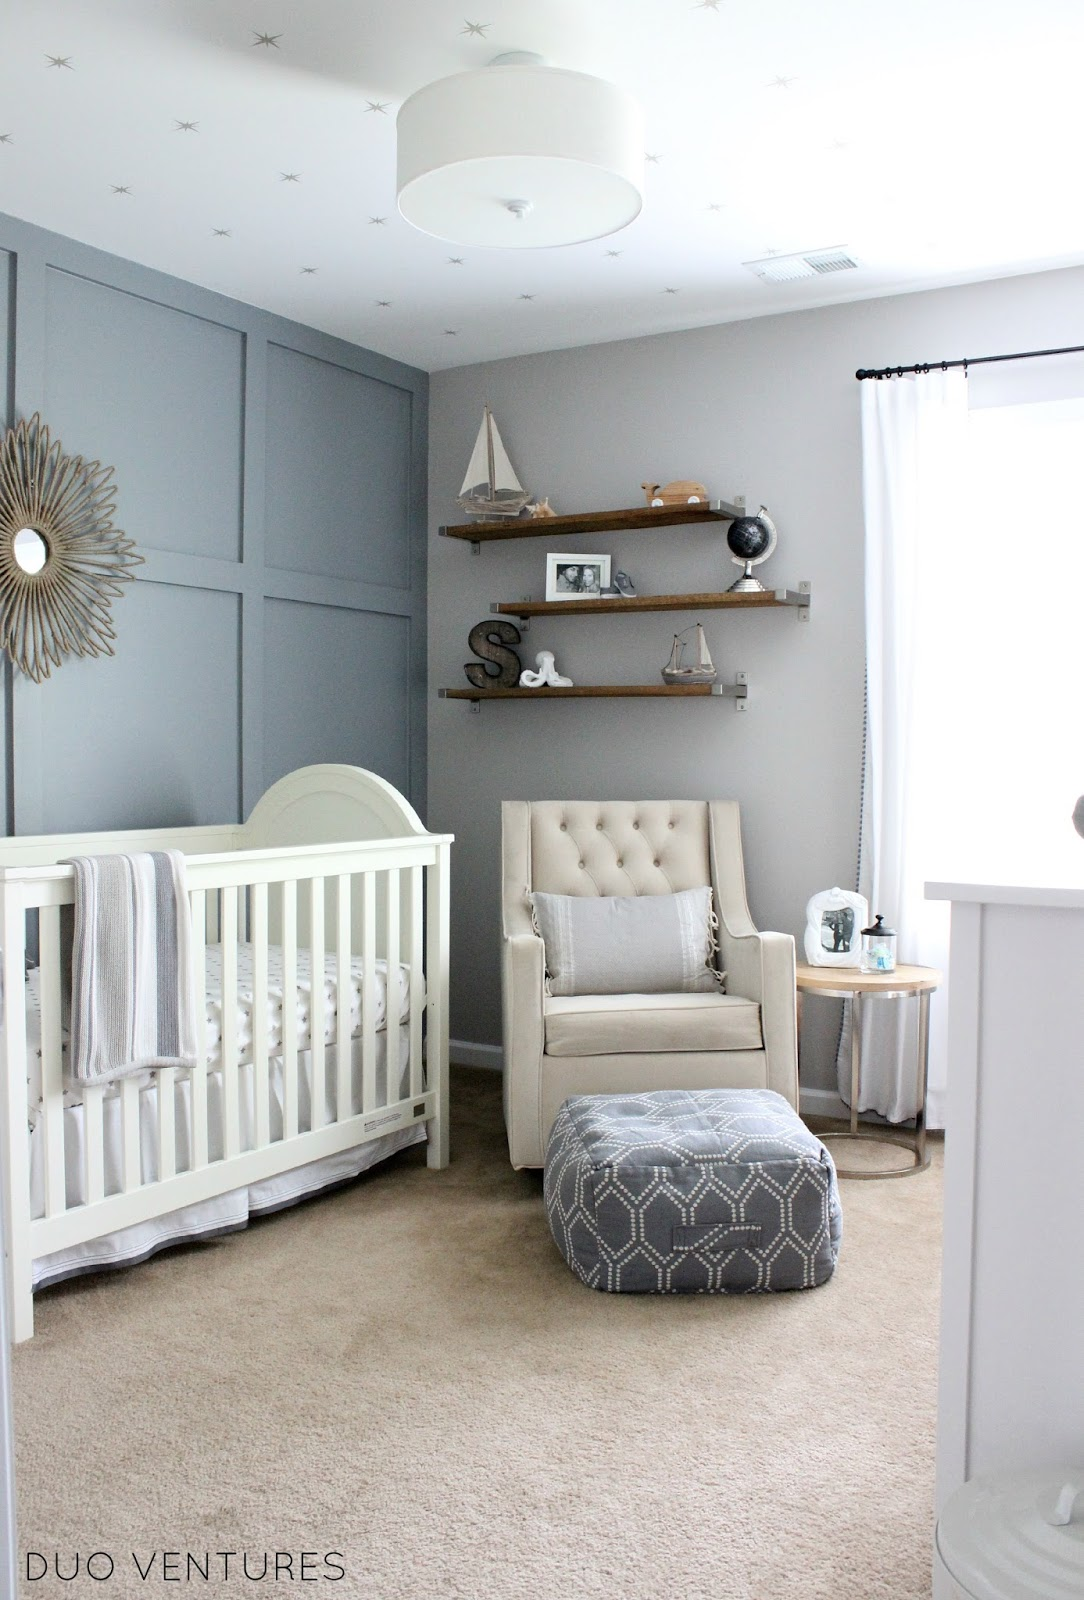 Toddler Boy Room Ideas: Duo Ventures: Our Hamptons Inspired Nursery: Final Reveal